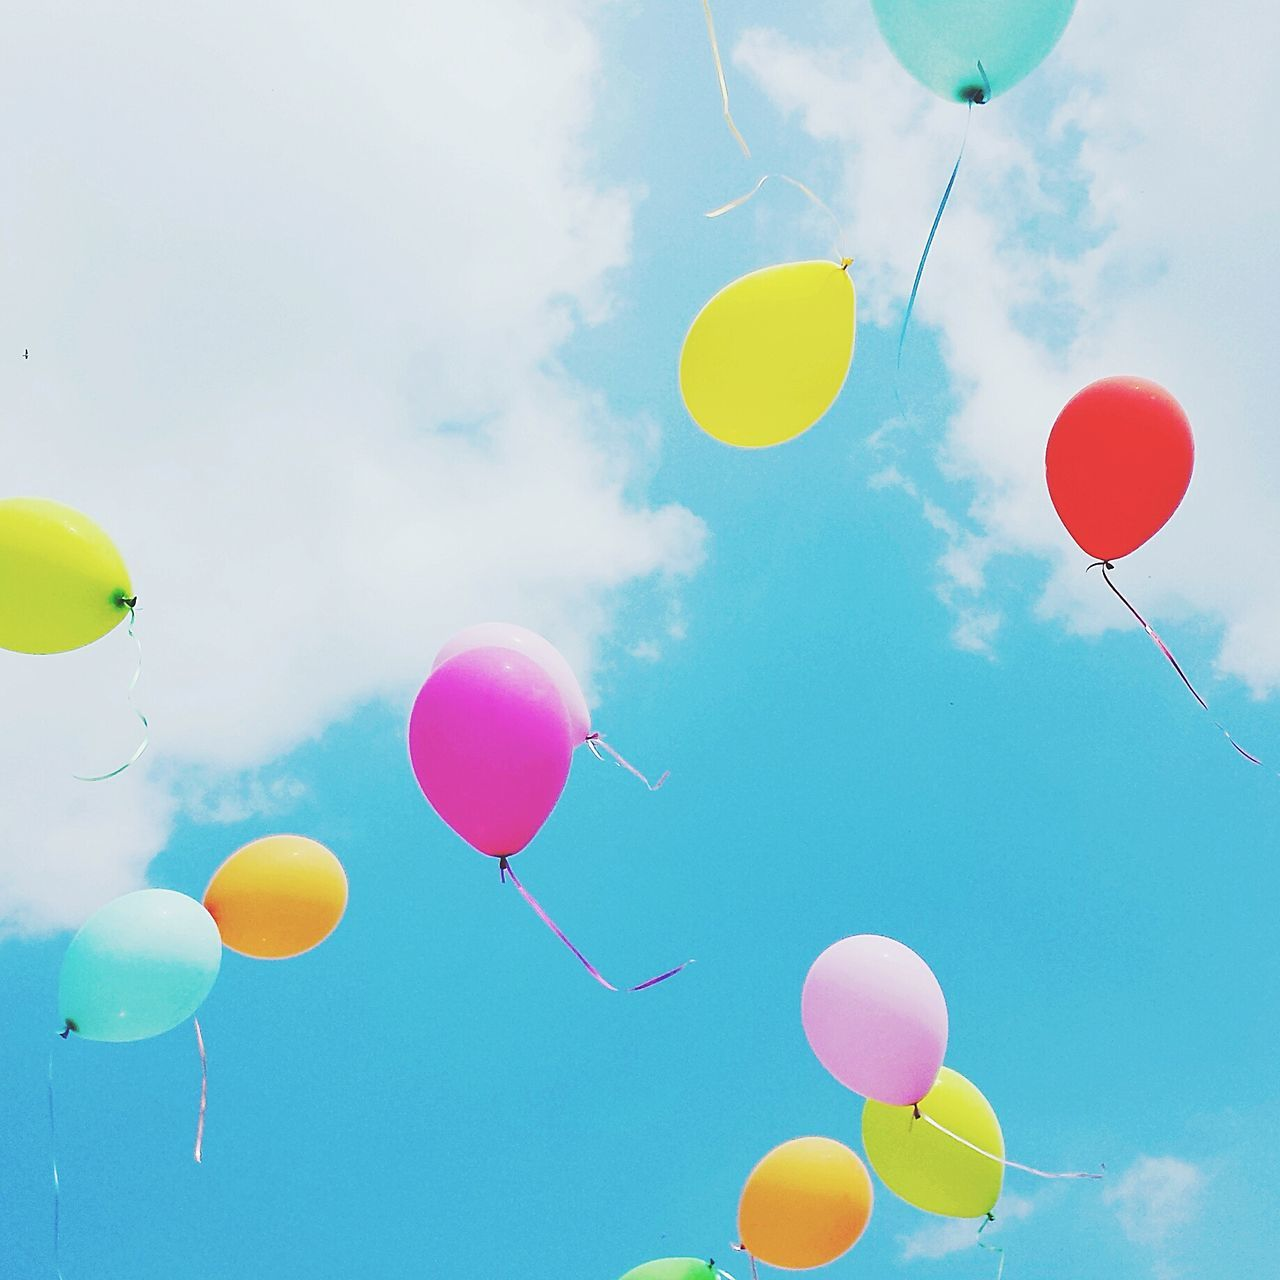 balloon, celebration, helium balloon, multi colored, helium, mid-air, low angle view, flying, party - social event, sky, celebration event, birthday, cloud - sky, yellow, outdoors, day, childhood, fragility, no people, ballooning festival, releasing, hot air balloon